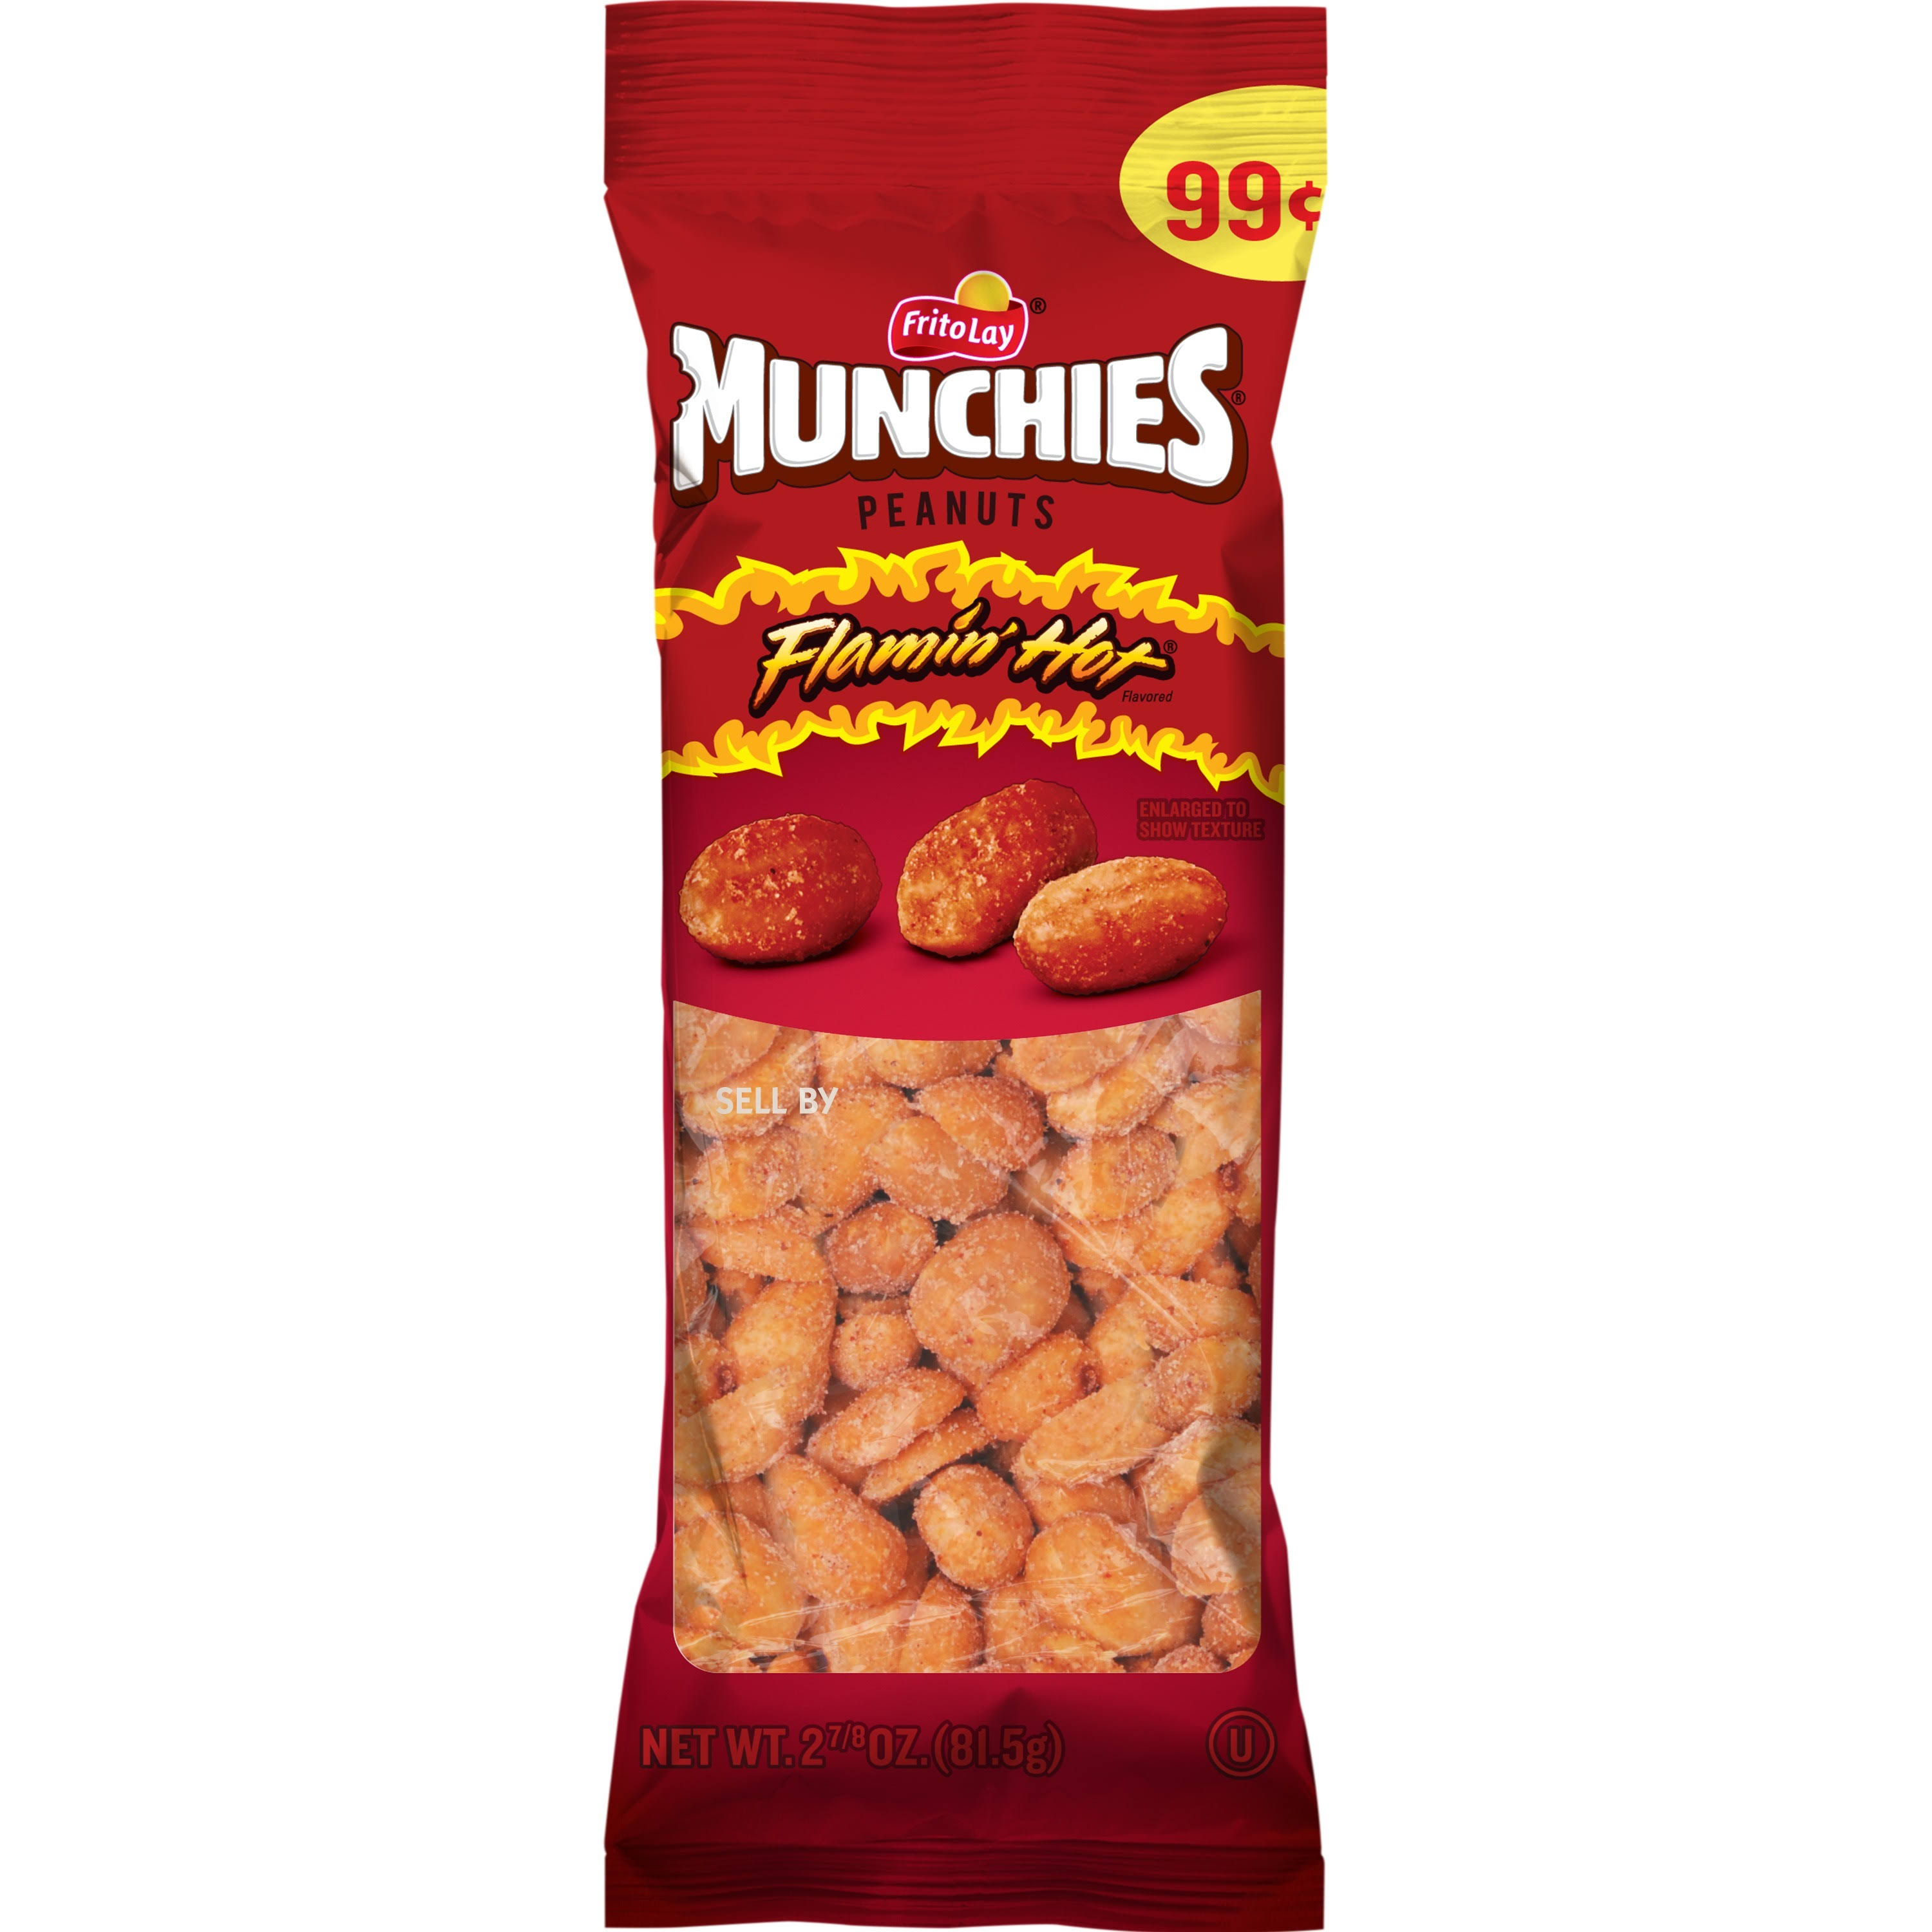 Munchies Flamin' Hot Peanuts